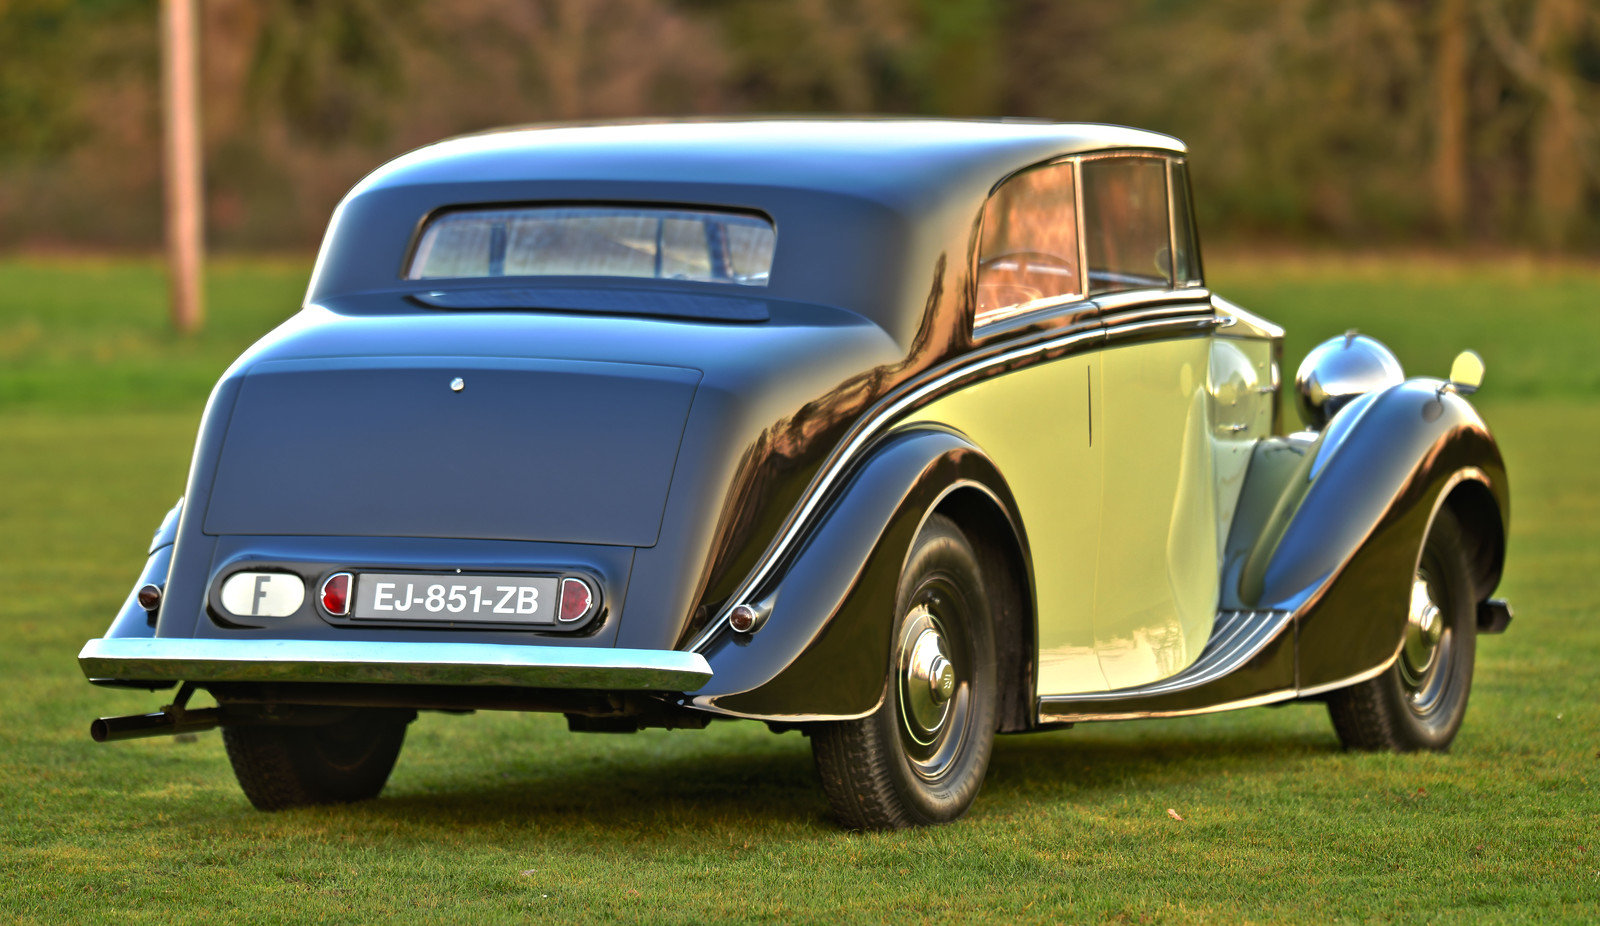 1947 Rolls Royce Silver Wraith Freestone & Webb 2 door Coupe For Sale (picture 2 of 6)